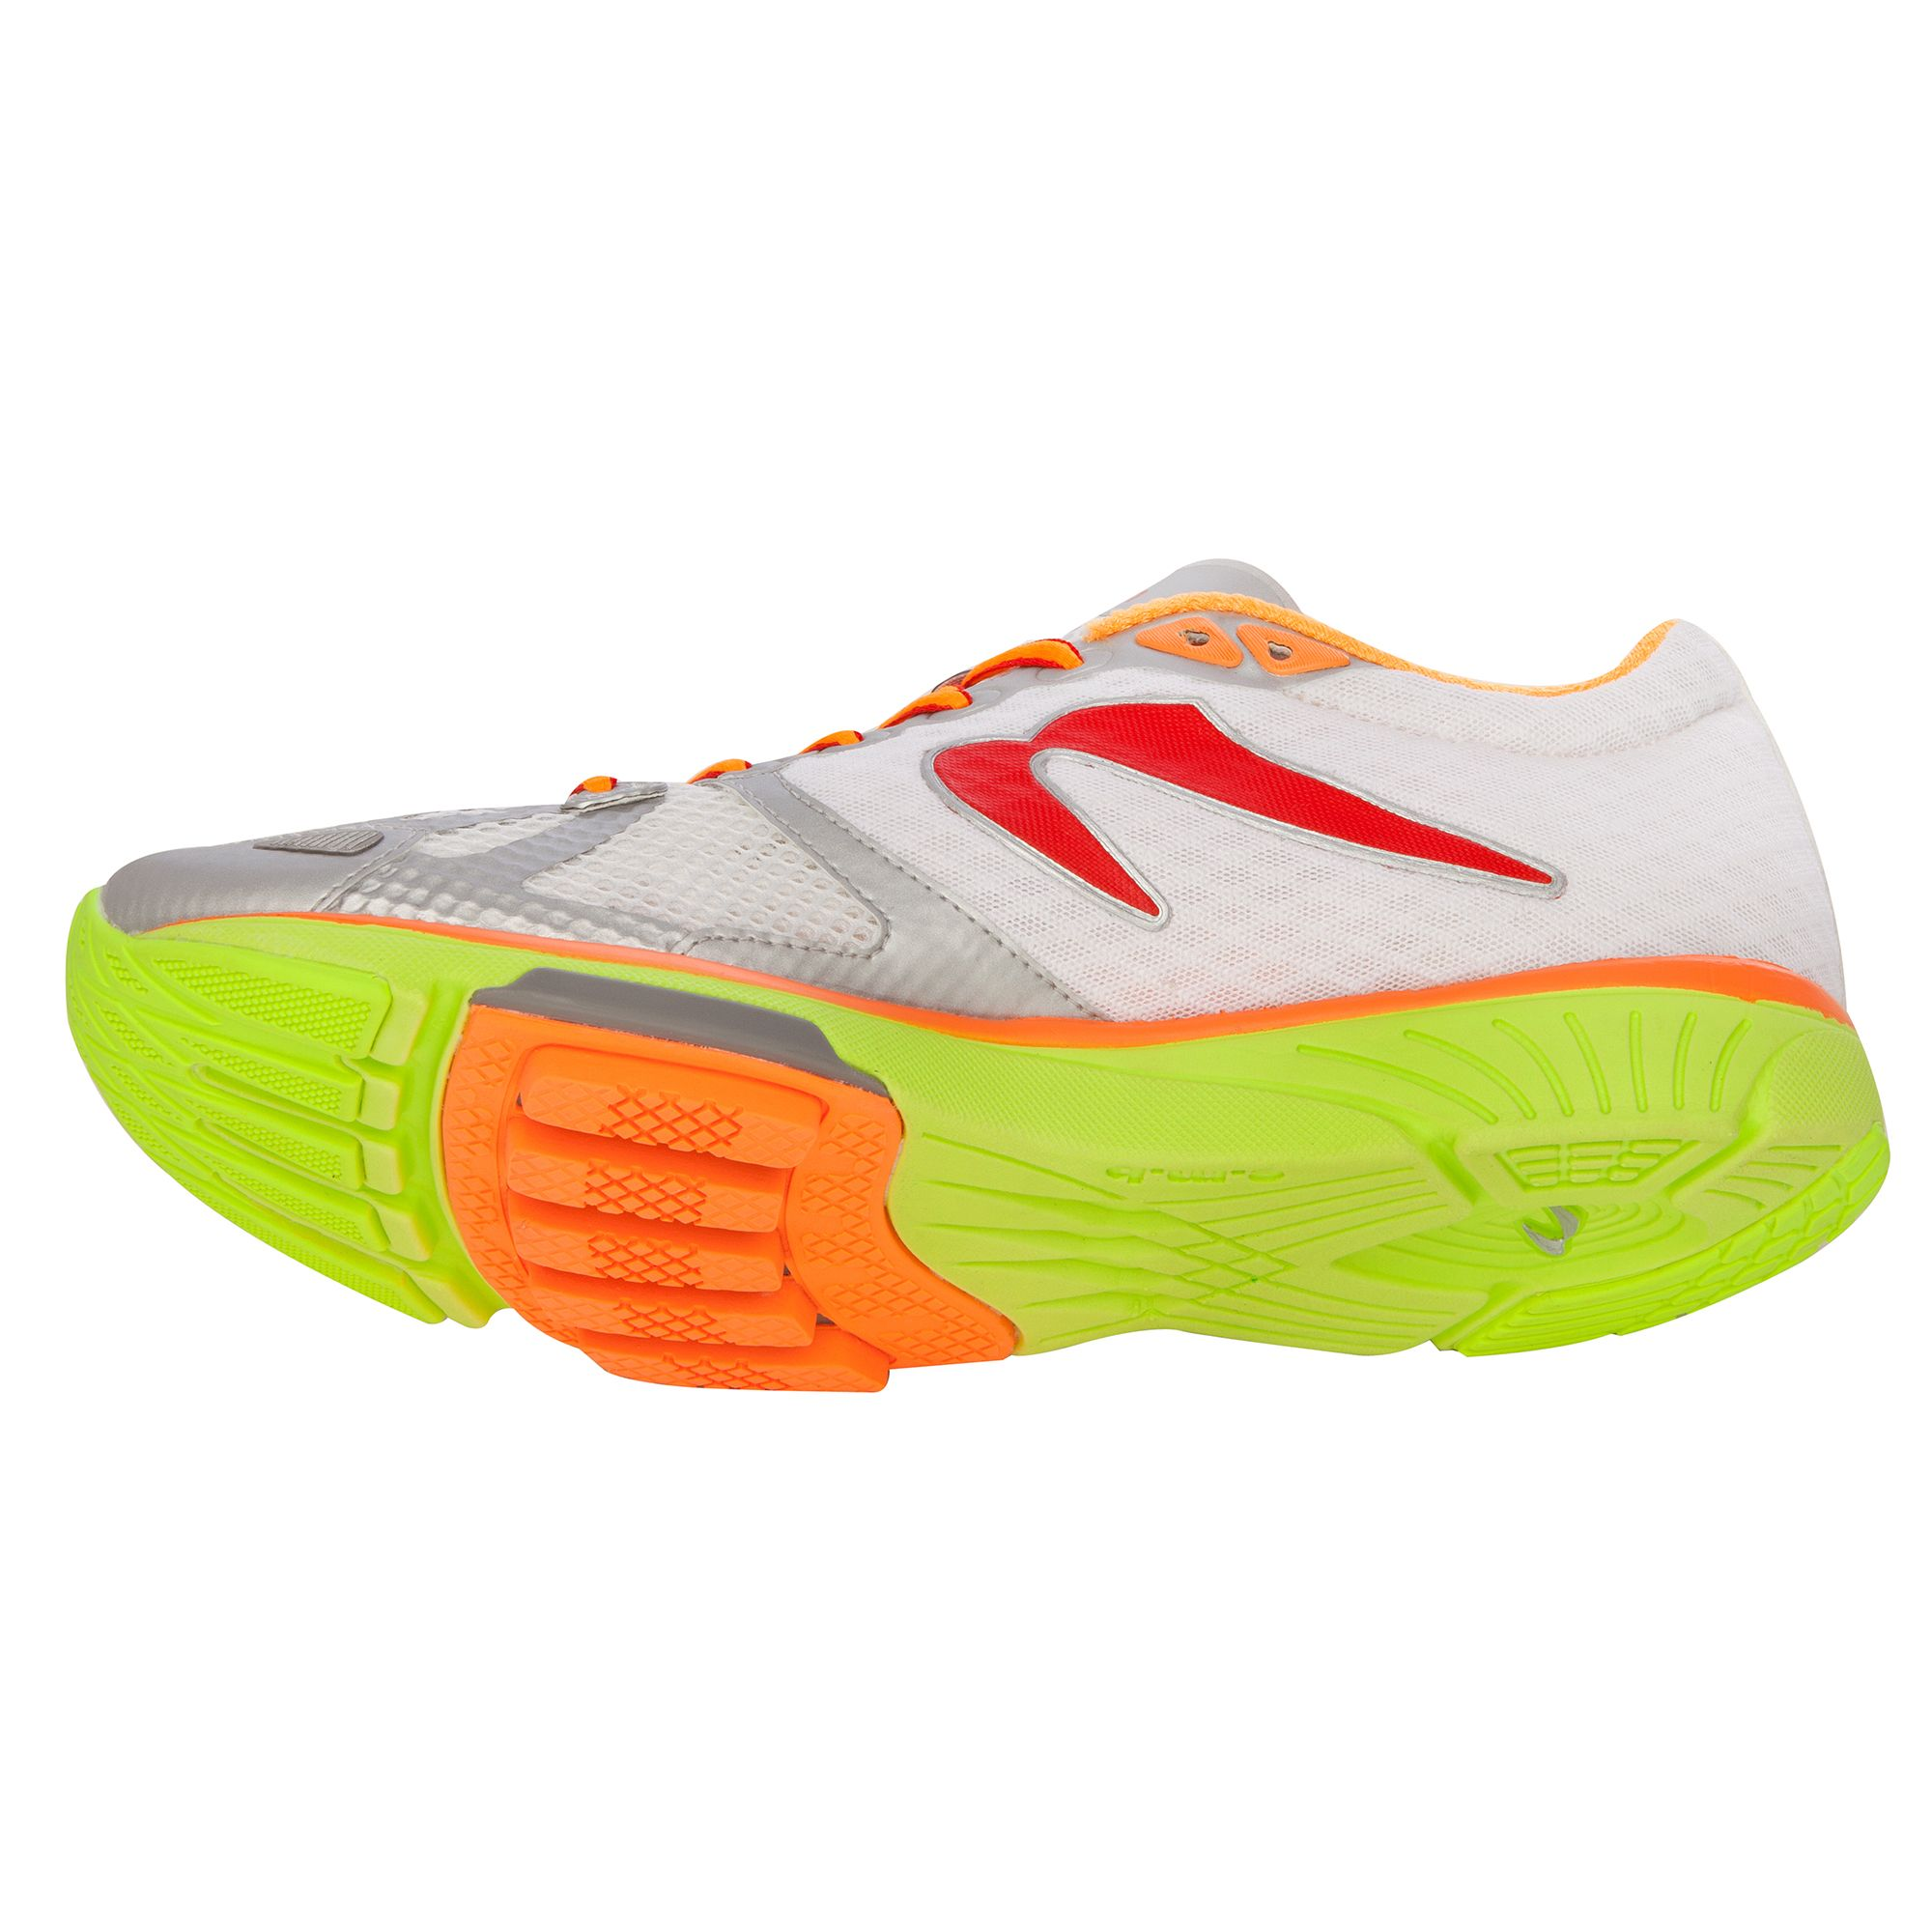 Newton Long Distance Running Shoes